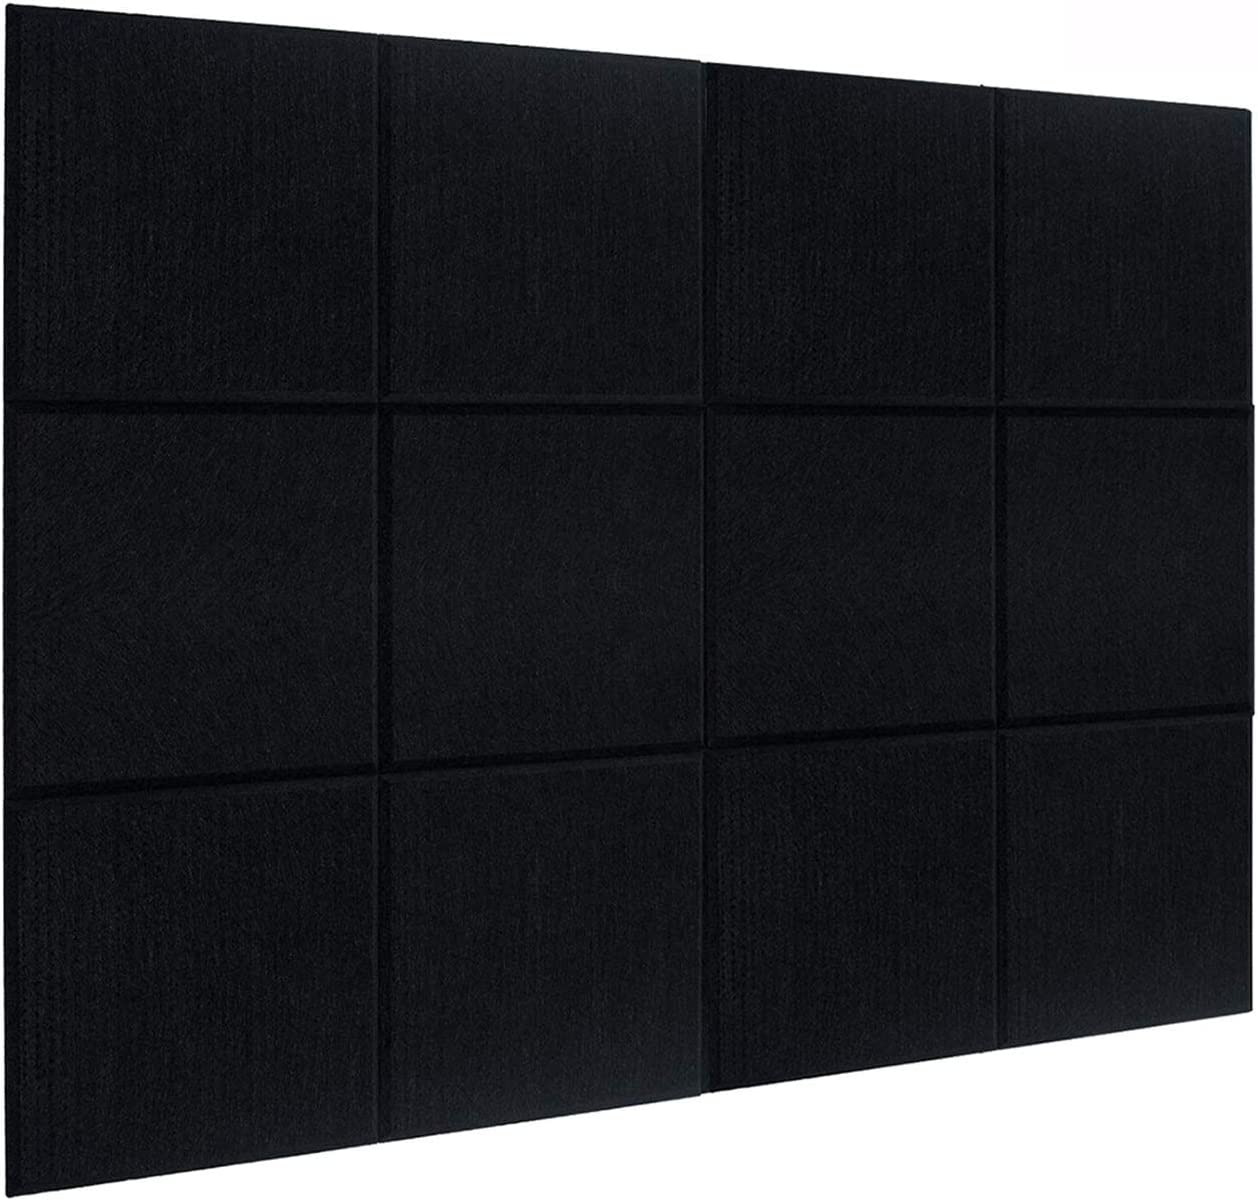 DEKIRU New 12 Pack Acoustic Foam Panels, 12 X 12 X 0.4 Inches Soundproofing Insulation Absorption Panel High Density Beveled Edge Sound Panels, Acoustic Treatment Used in Home&Offices Wall